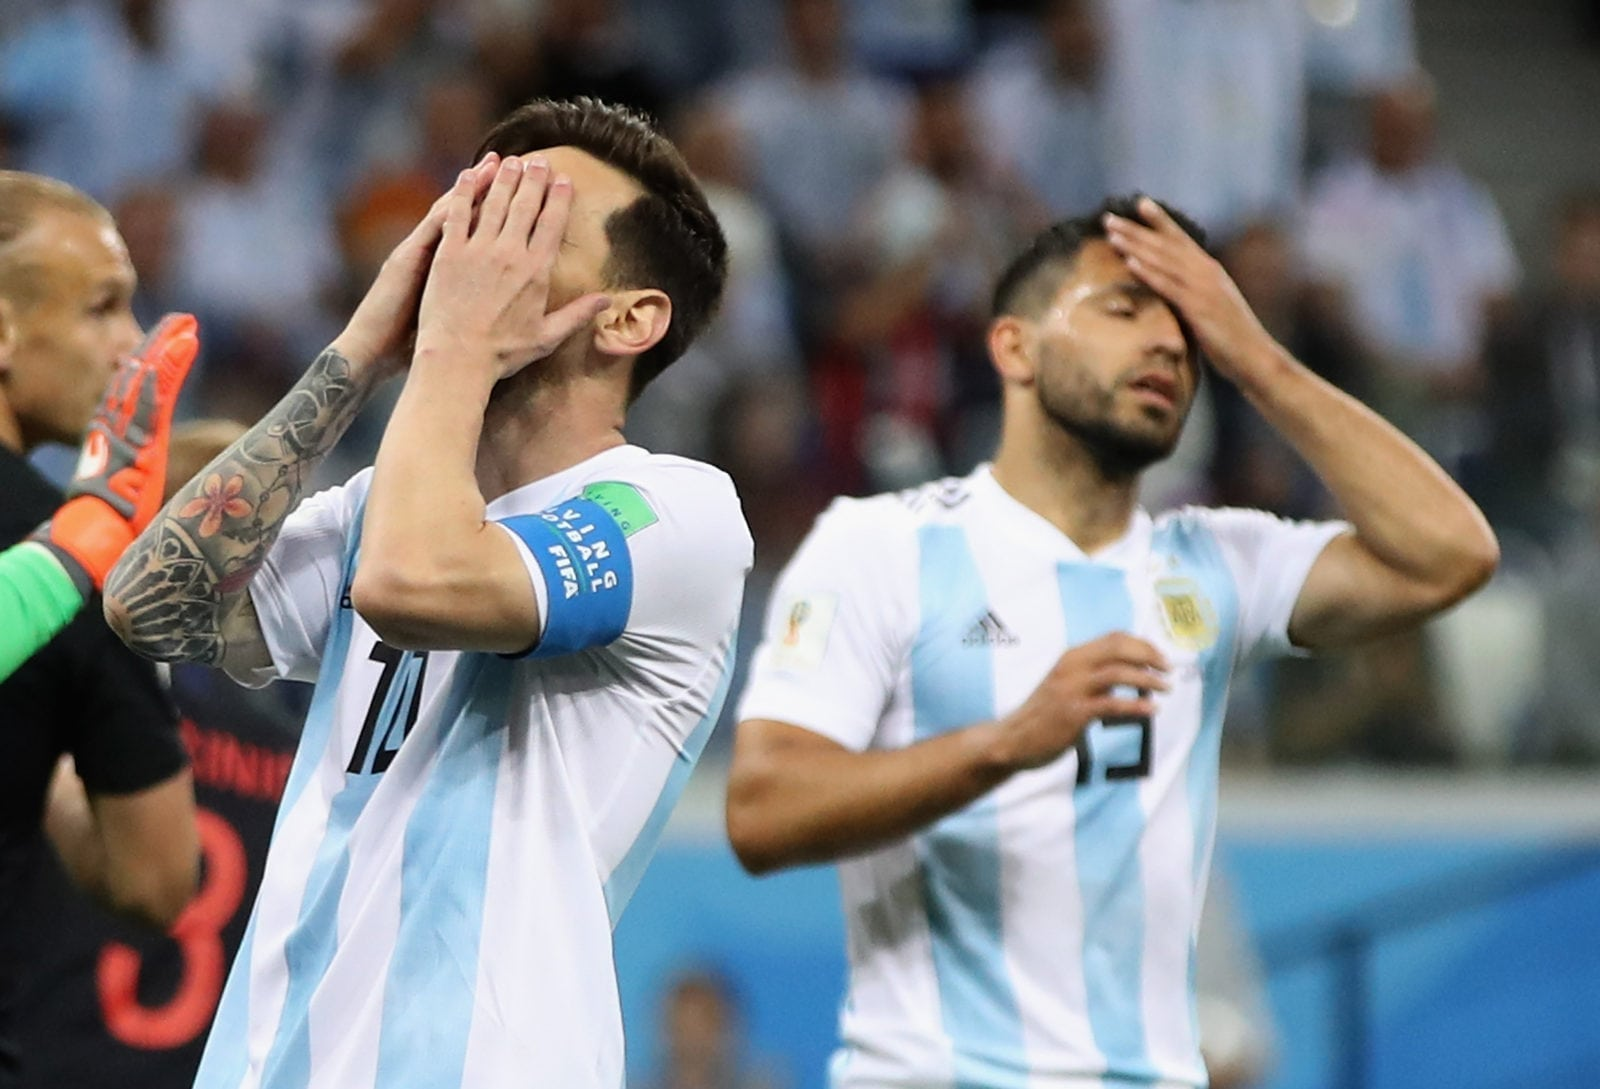 NIZHNIY NOVGOROD, RUSSIA - JUNE 21: Lionel Messi and team mate Sergio Aguero of Argentina show their dejection during the 2018 FIFA World Cup Russia group D match between Argentina and Croatia at Nizhniy Novgorod Stadium on June 21, 2018 in Nizhniy Novgorod, Russia. (Photo by Clive Brunskill/Getty Images)